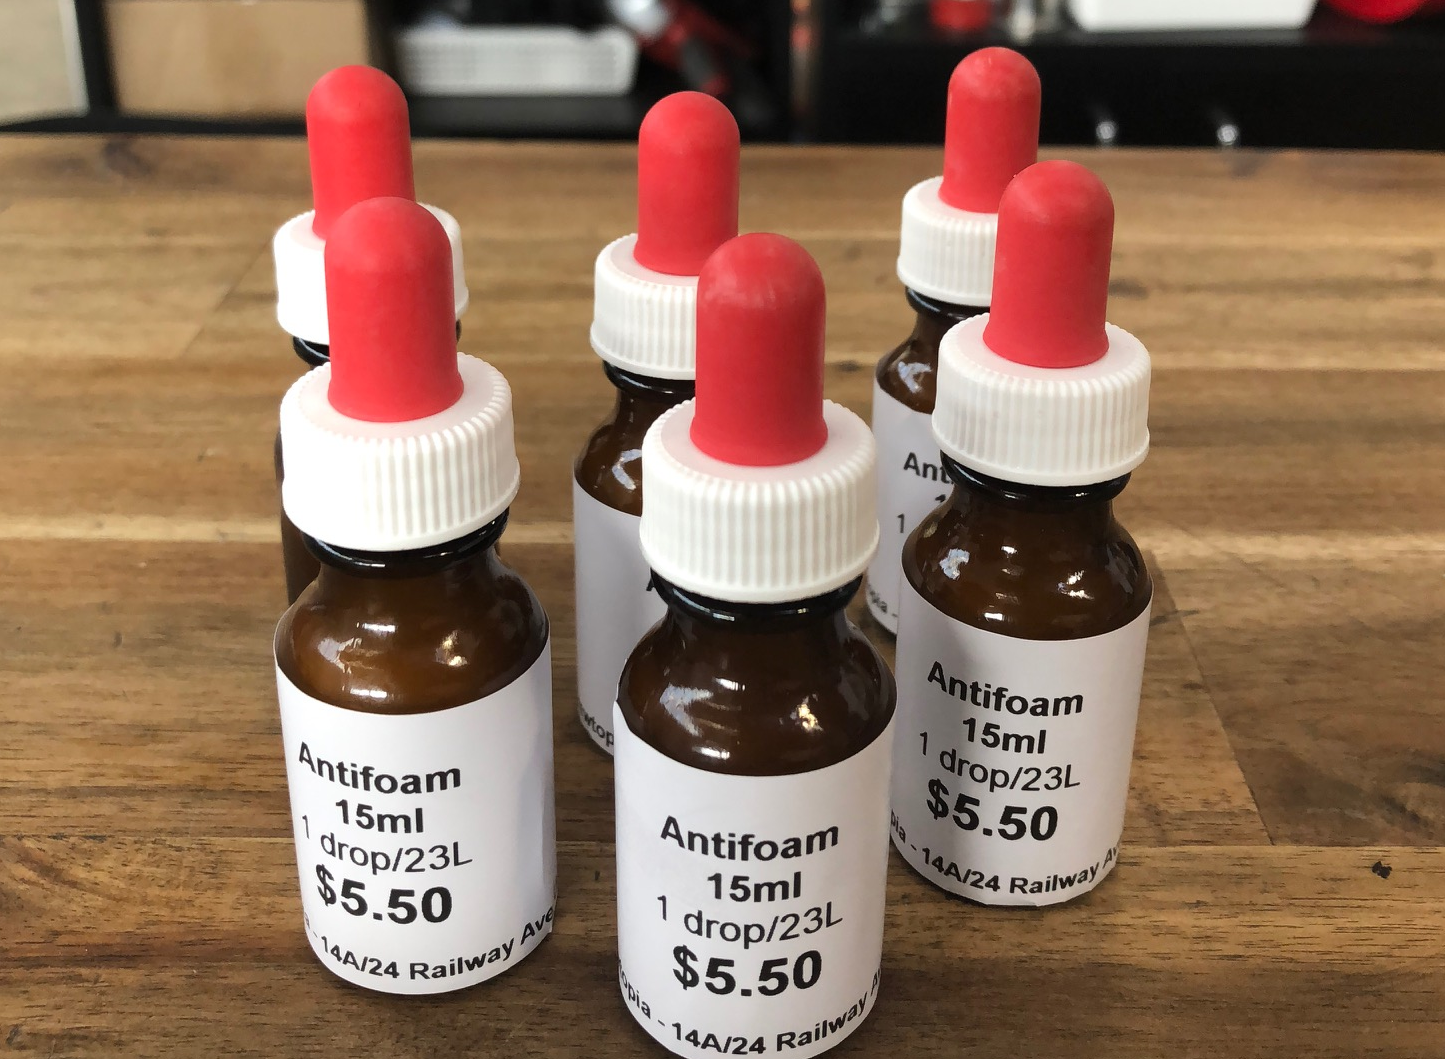 Antifoam 15ml